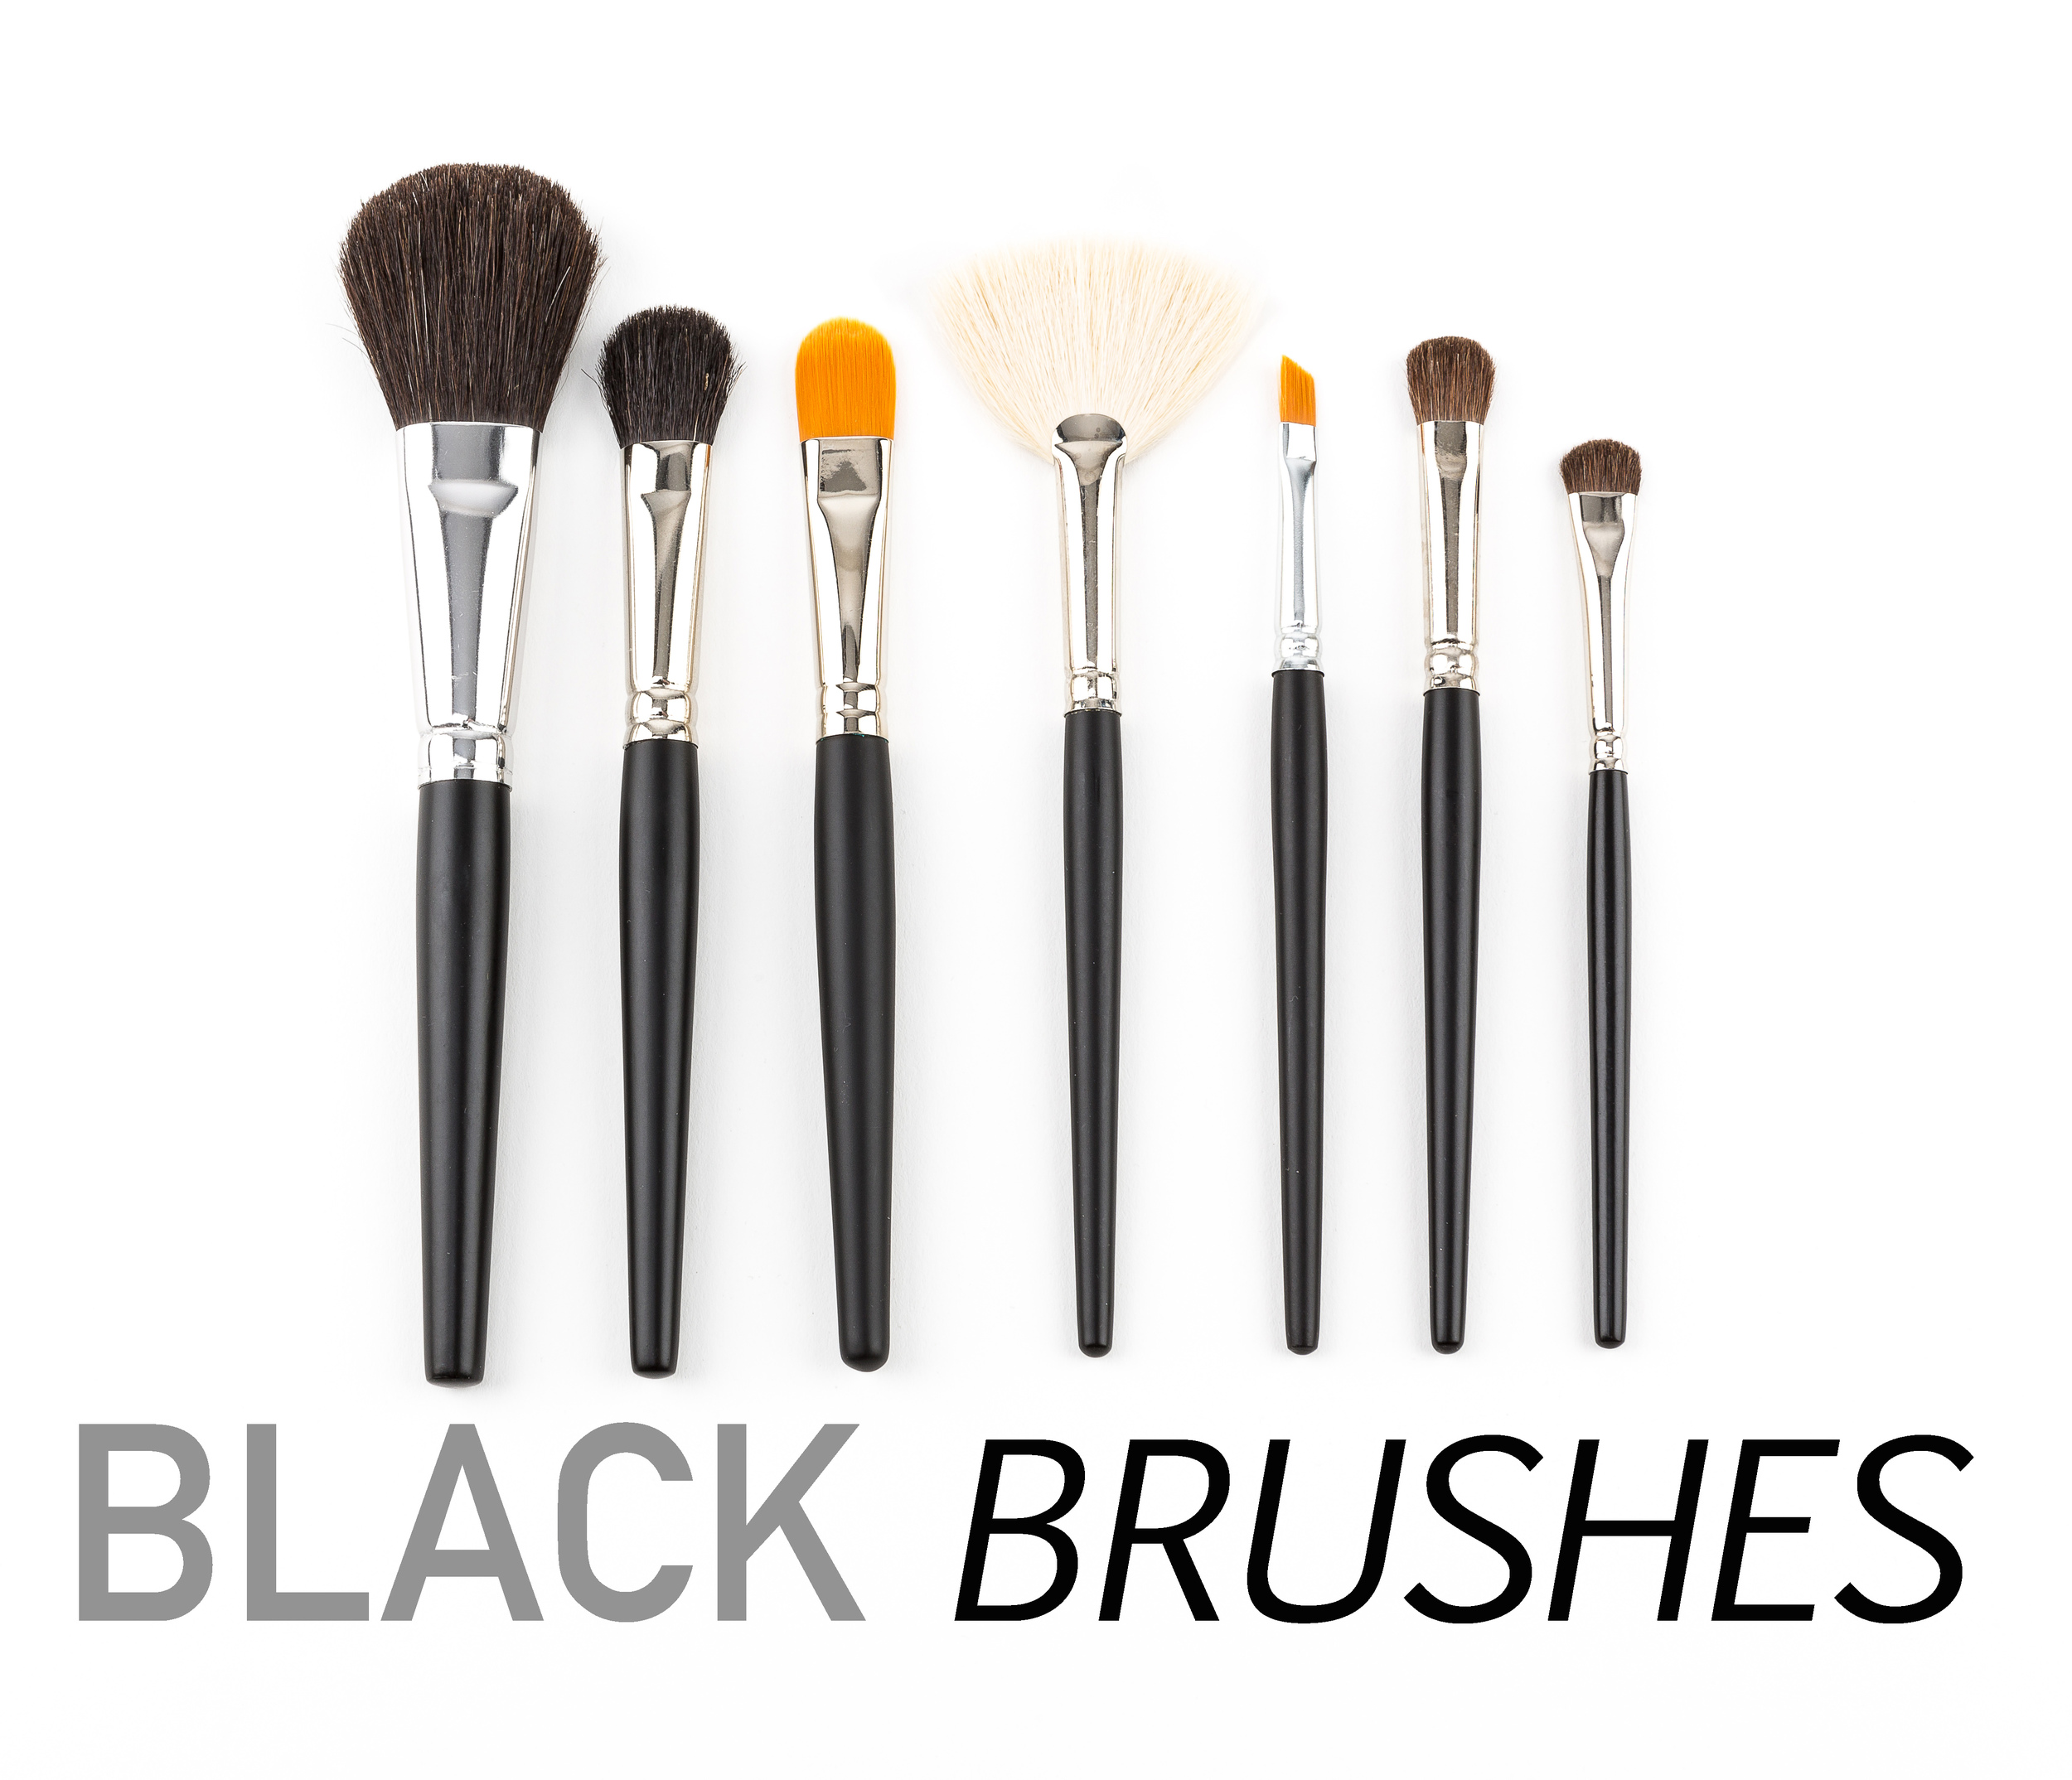 CLICK TO VIEW ALL BLACK BRUSHES